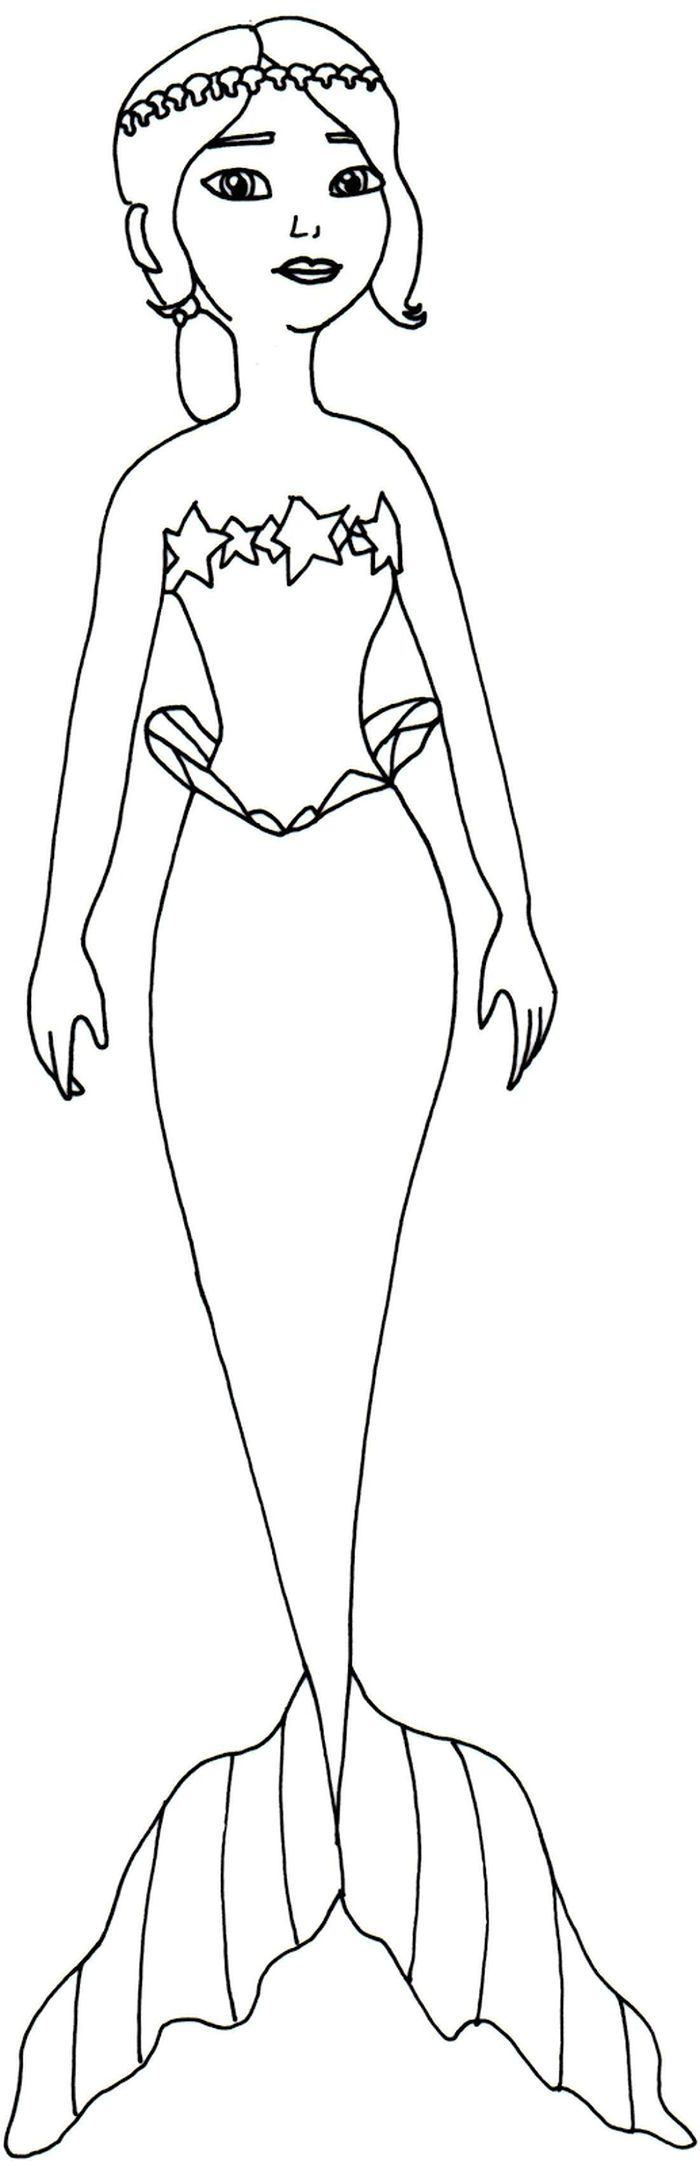 Princess Sofia Mermaid Coloring Pages | Mermaid coloring pages, Princess coloring  pages, Disney coloring pages printables